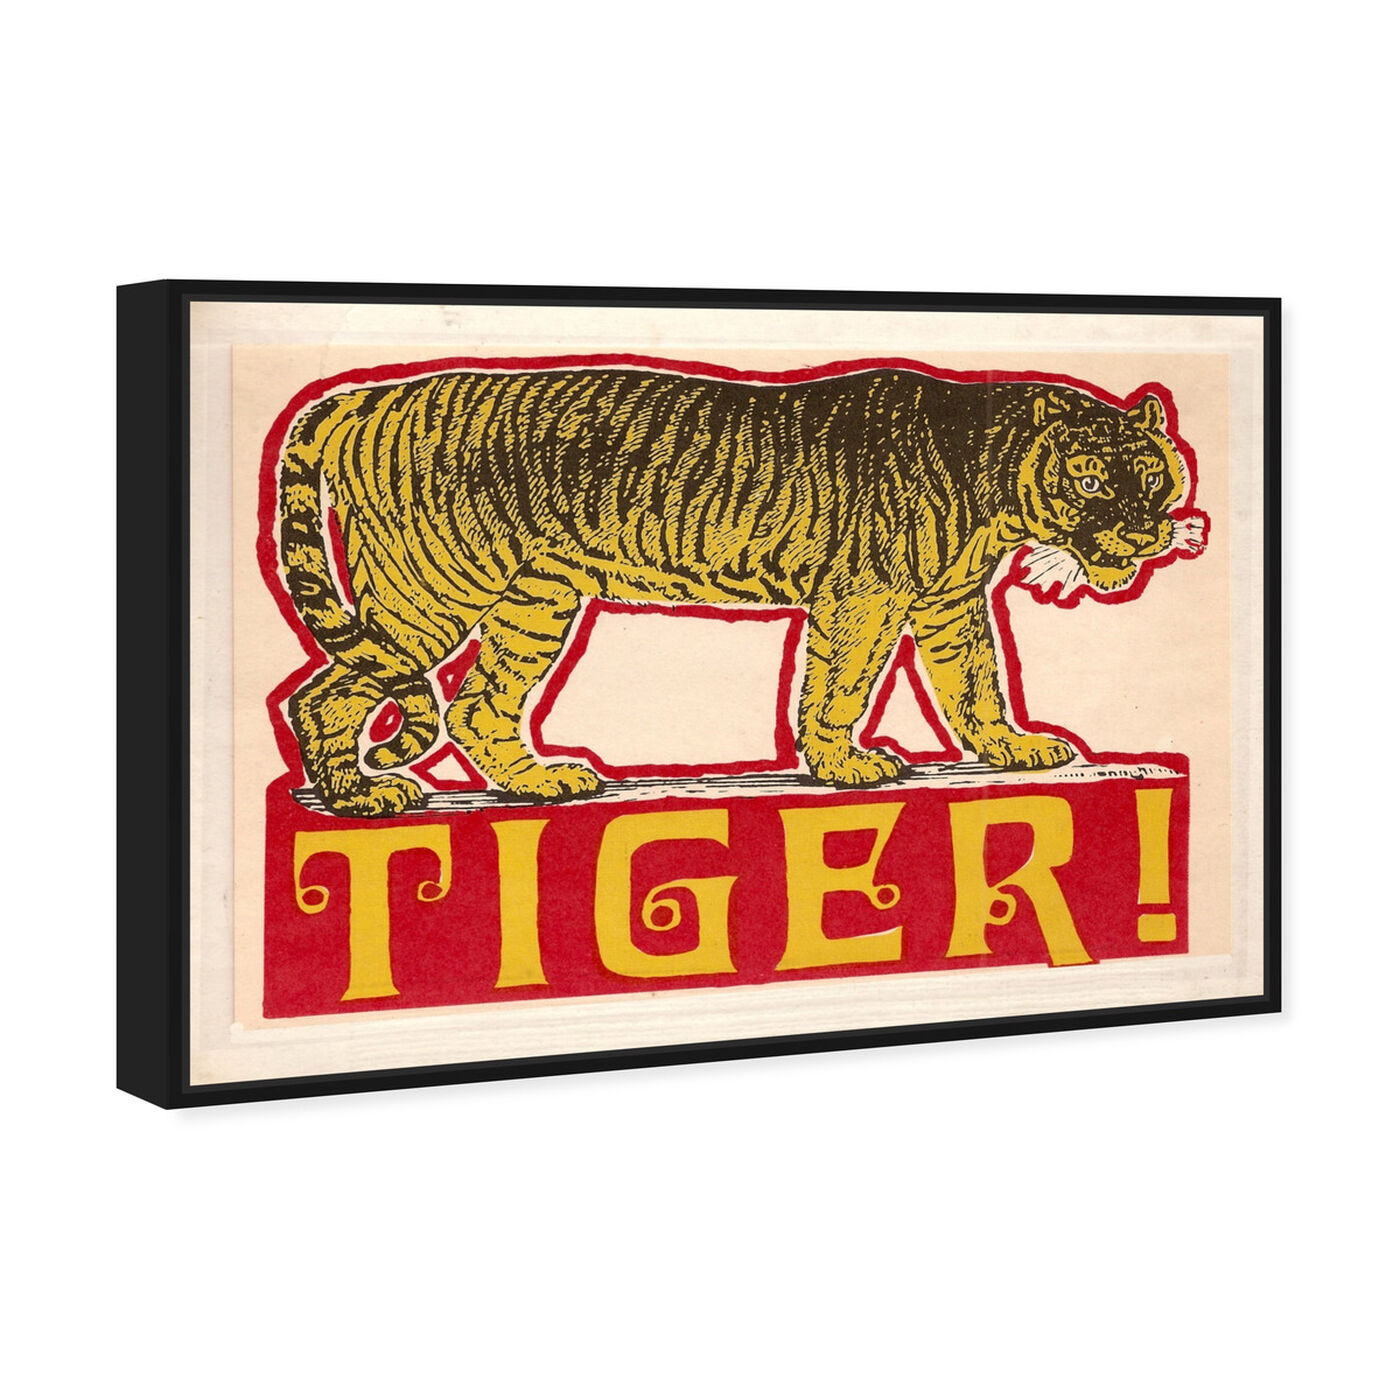 Angled view of Indian Tiger featuring advertising and posters art.